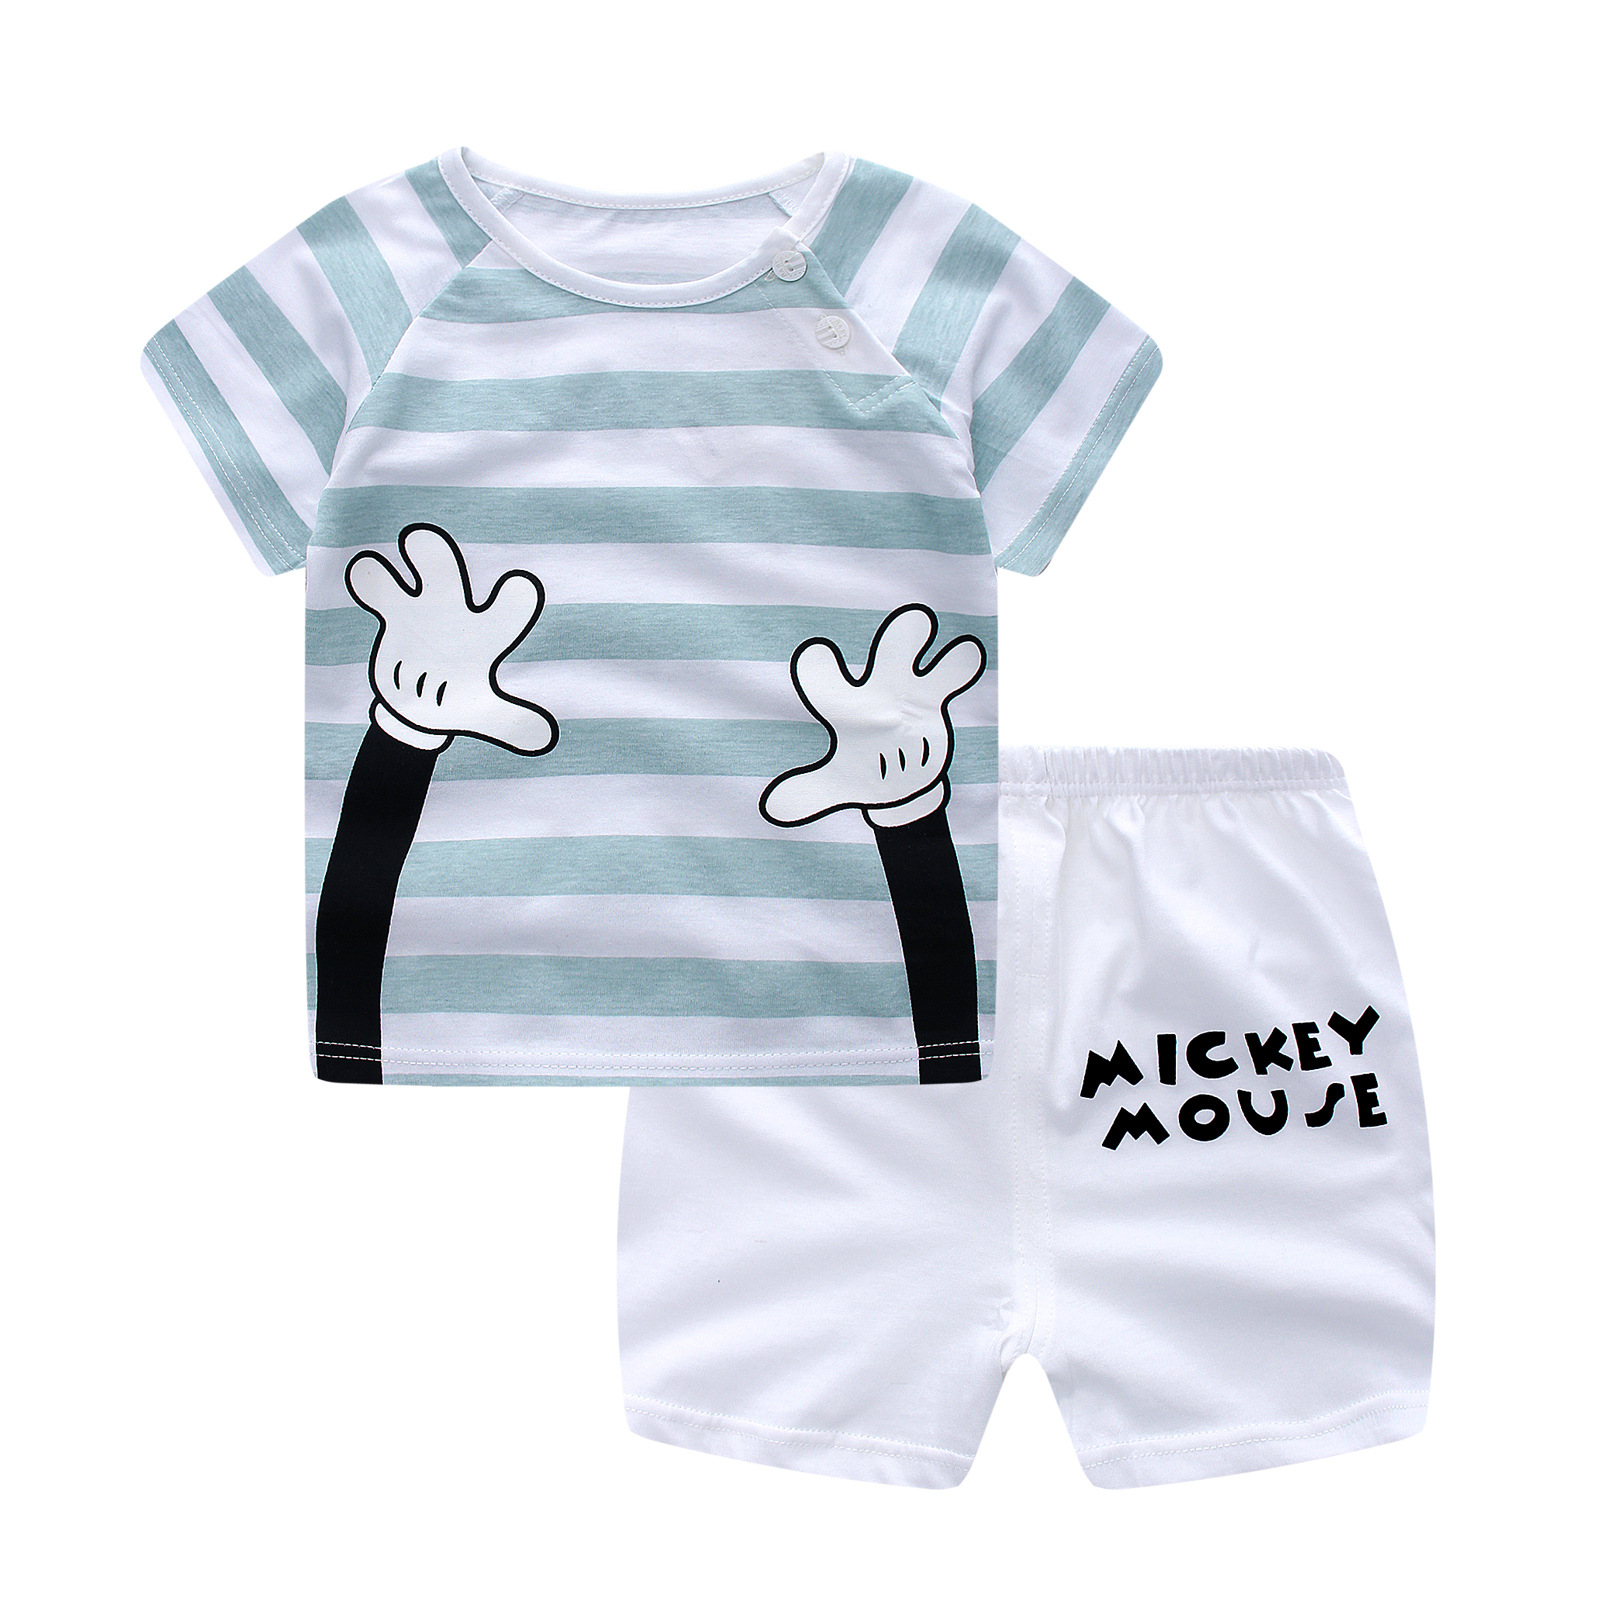 2pcs set Baby Boy Clothes Summer 2018 cotton Short sleeve Newborn Baby Boys Clothes Set Cartoon Baby Clothing Suit (Shirt+Pants)